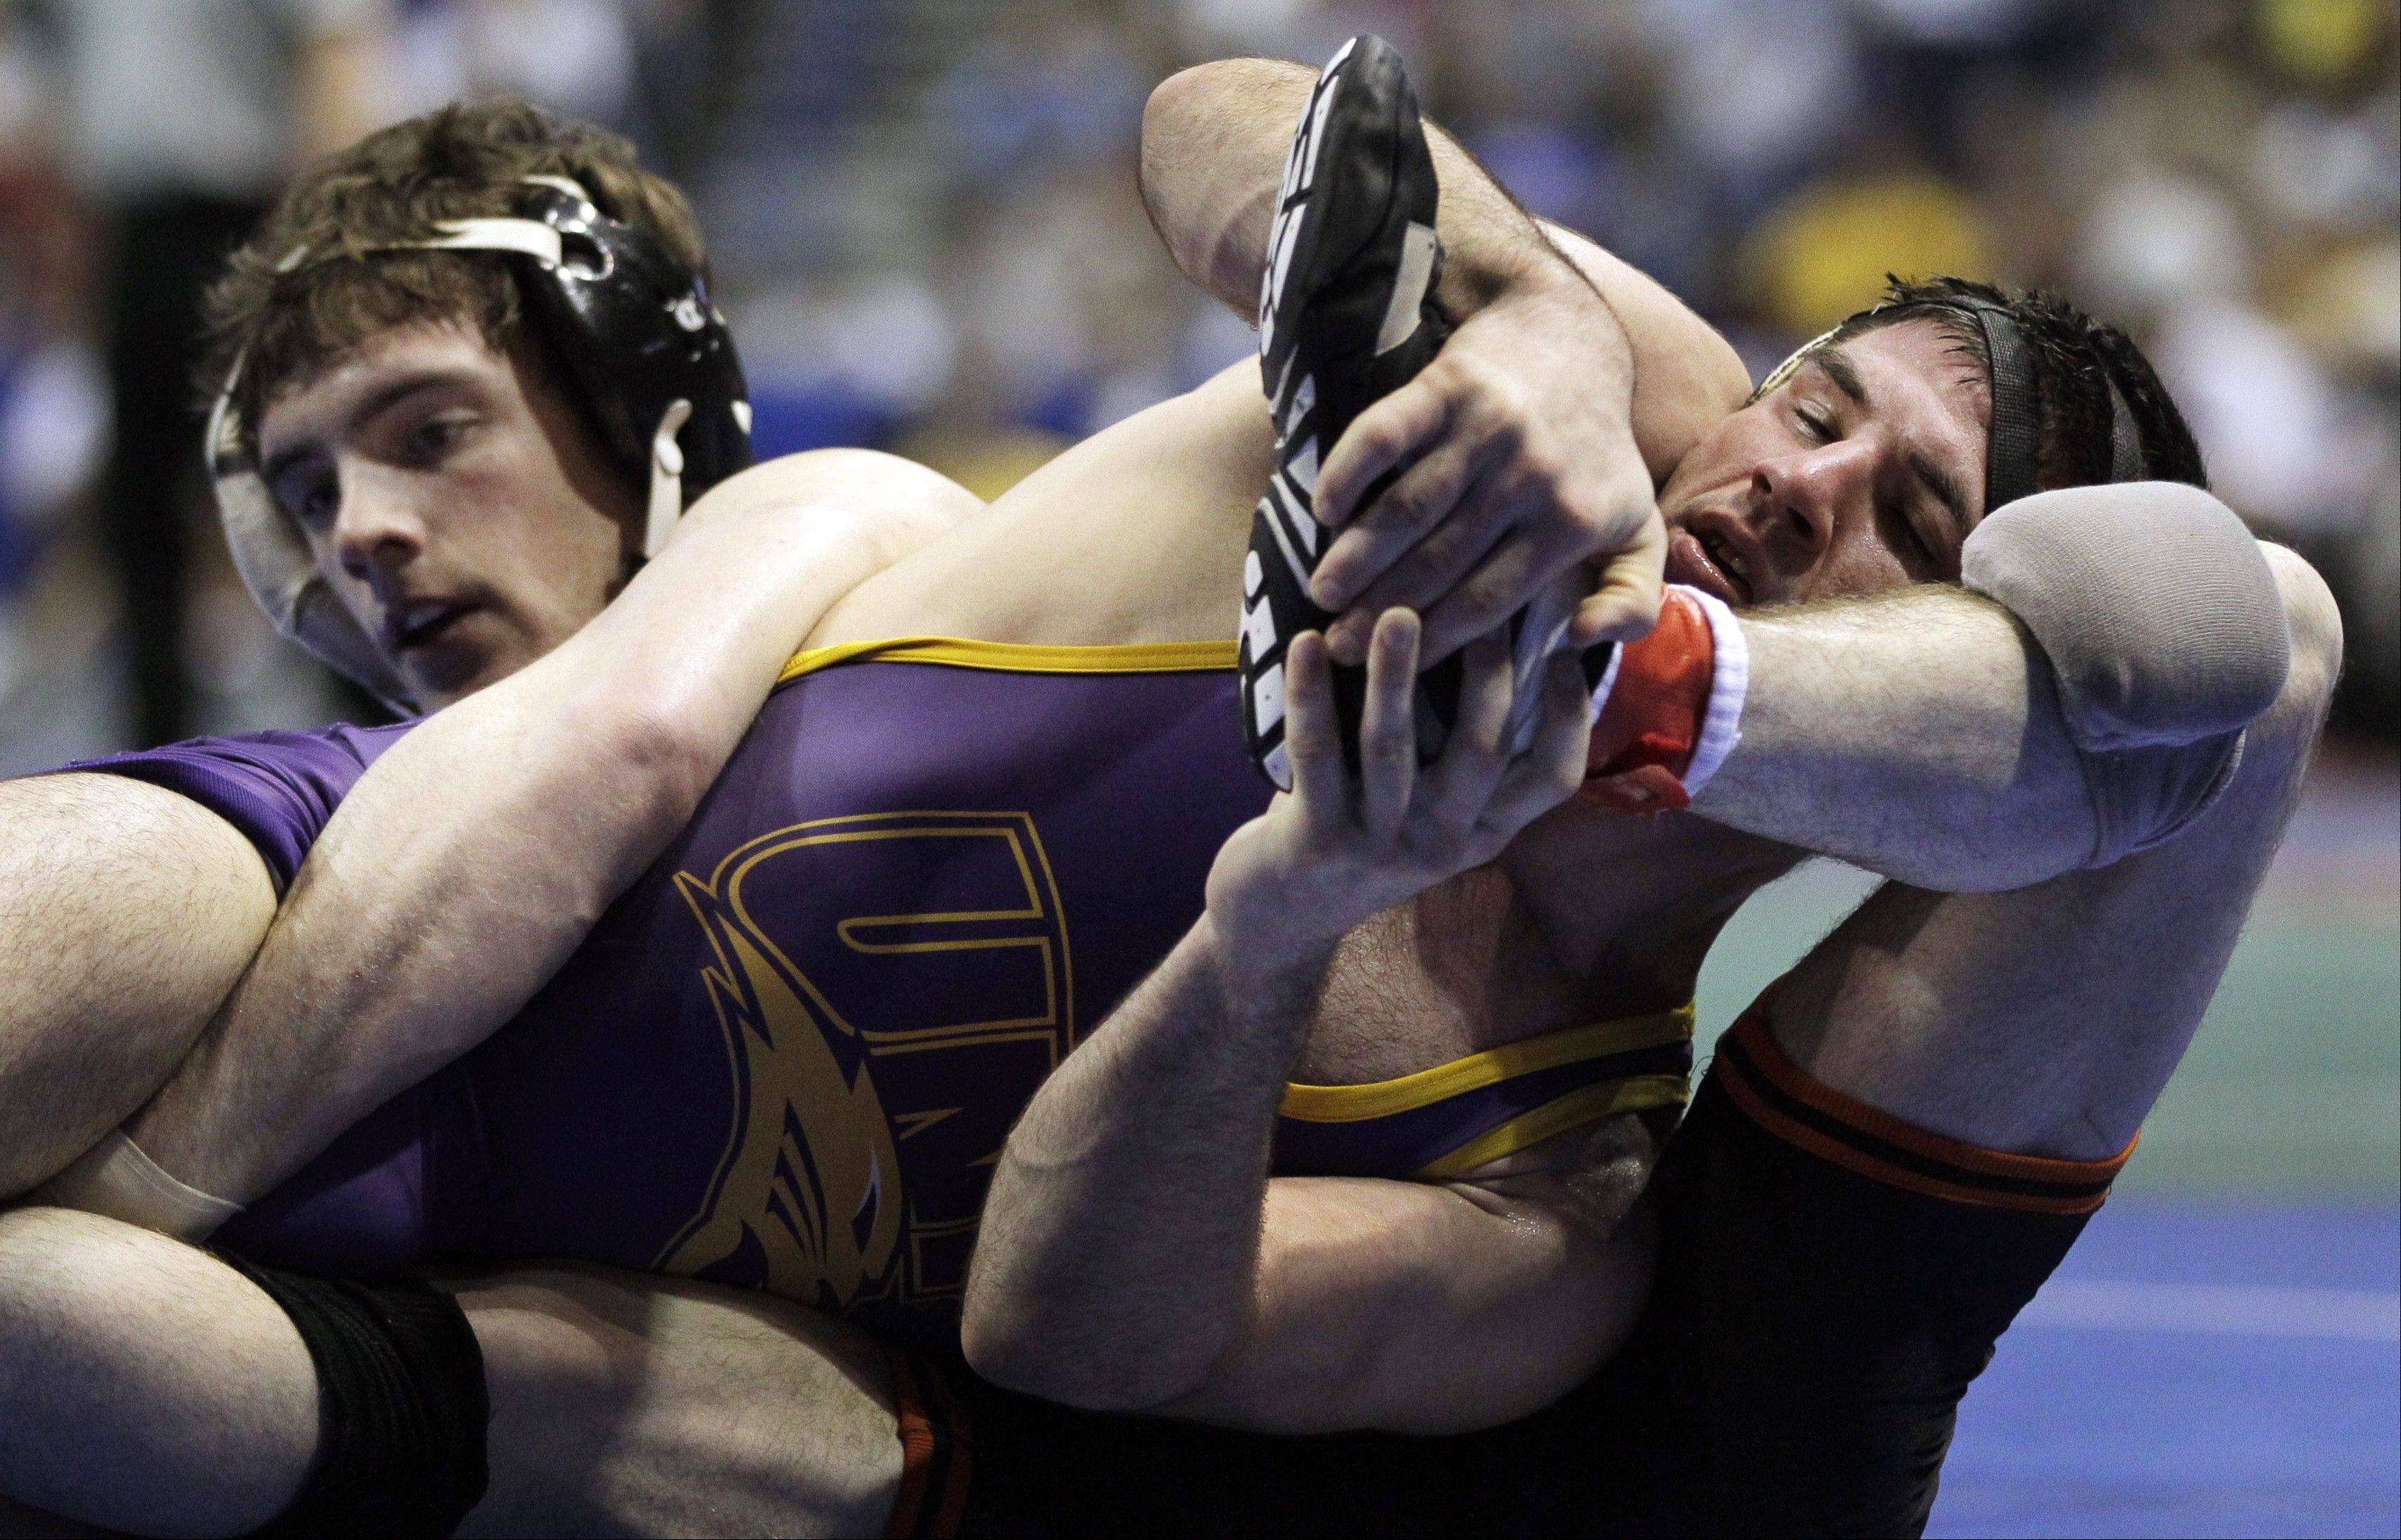 Northern Iowa's David Bonin, right, grapples with Princeton's Daniel Kolodzik during their 157-pound second round match March 15 at the NCAA Division I Wrestling Championships in St Louis. Northern Iowa, along with Missouri and Old Dominion University, has decided to join the Mid-American Conference in wrestling only.